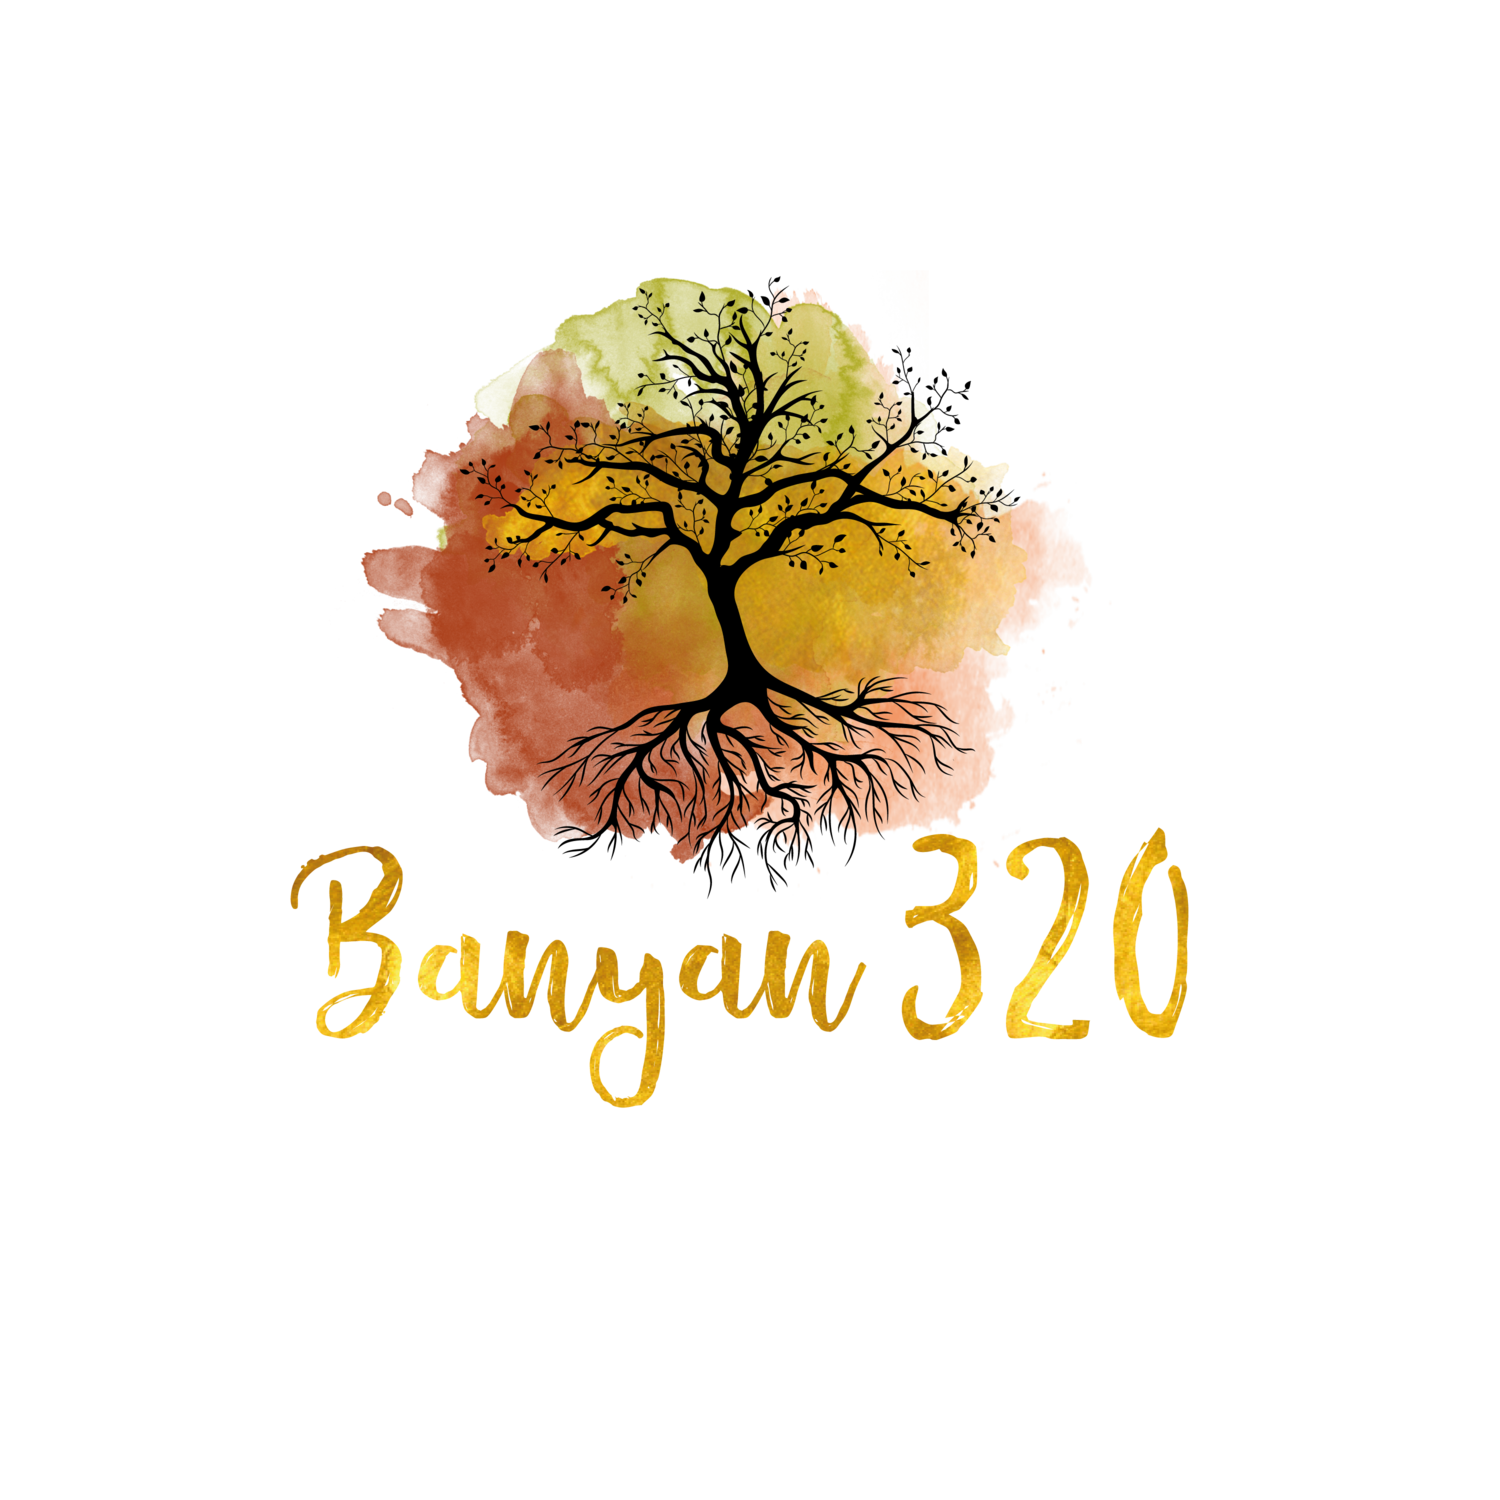 Banyan 320 Kitchen & Bar